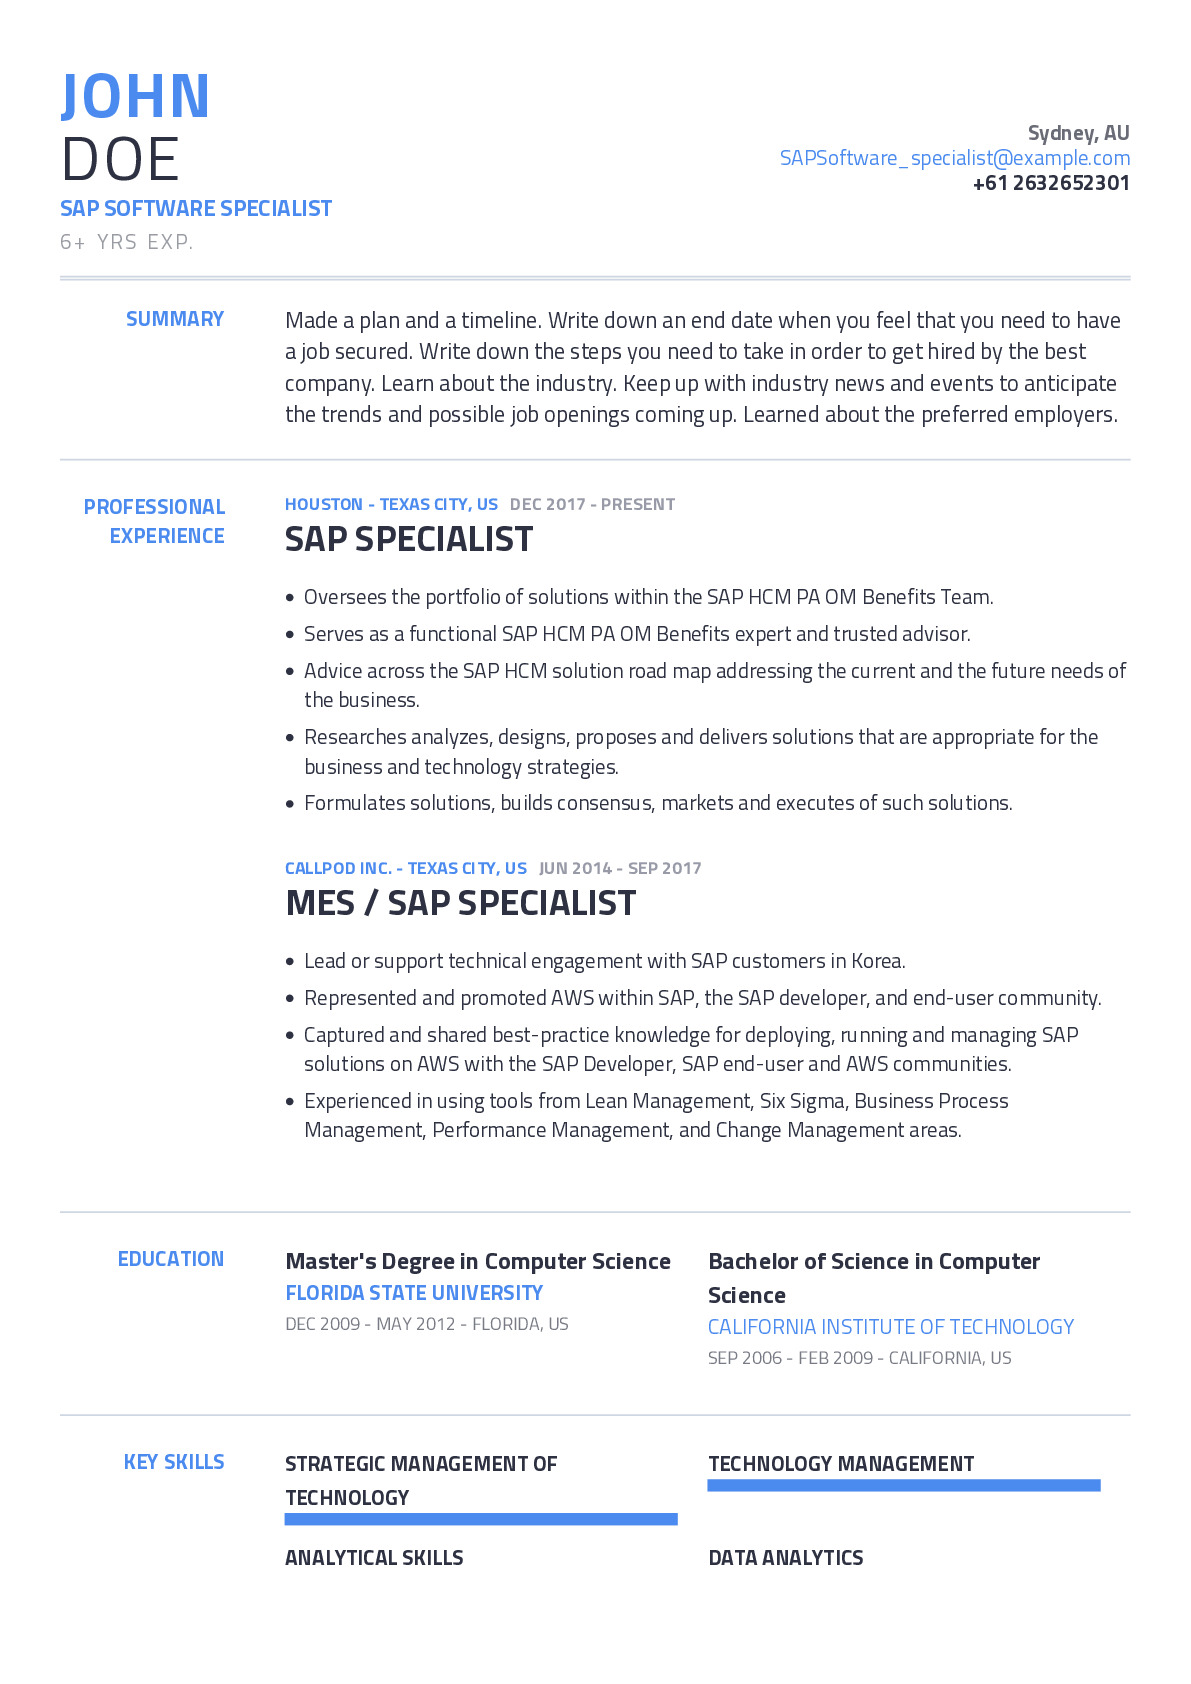 SAP Software Specialist Resume Example